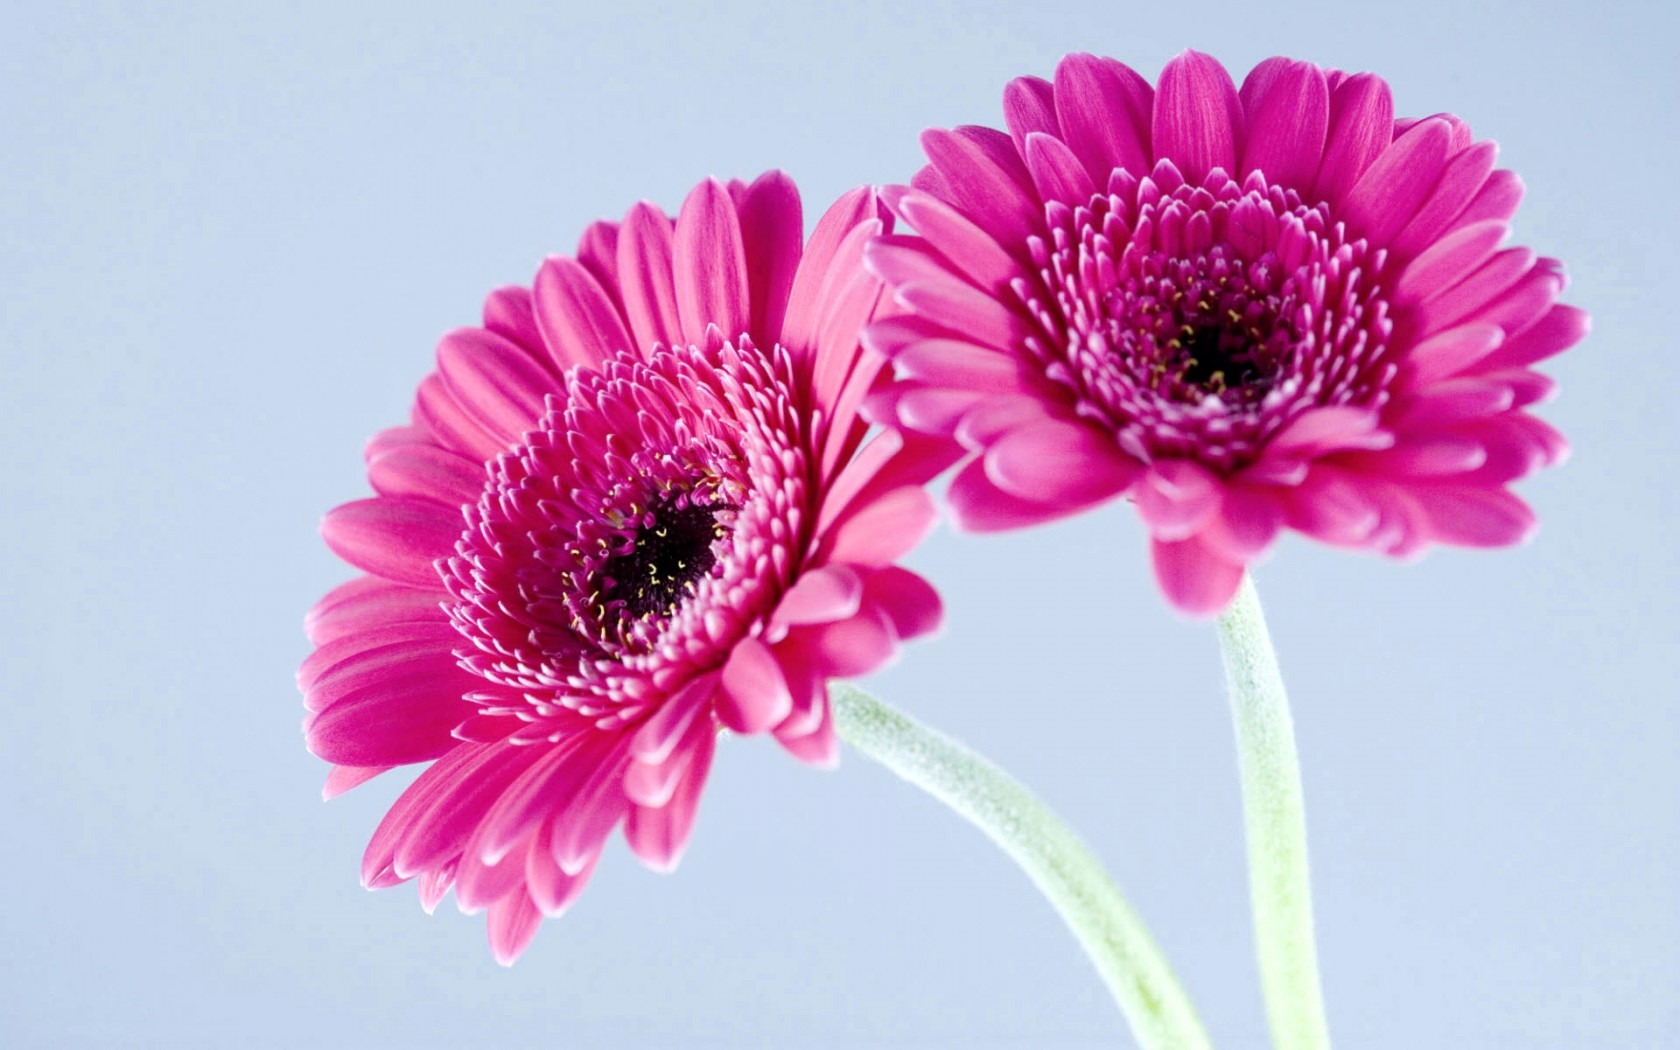 Cute Pink Android Wallpapers Purple Gerbera Daisies Wallpapers Hd Wallpapers Id 9881